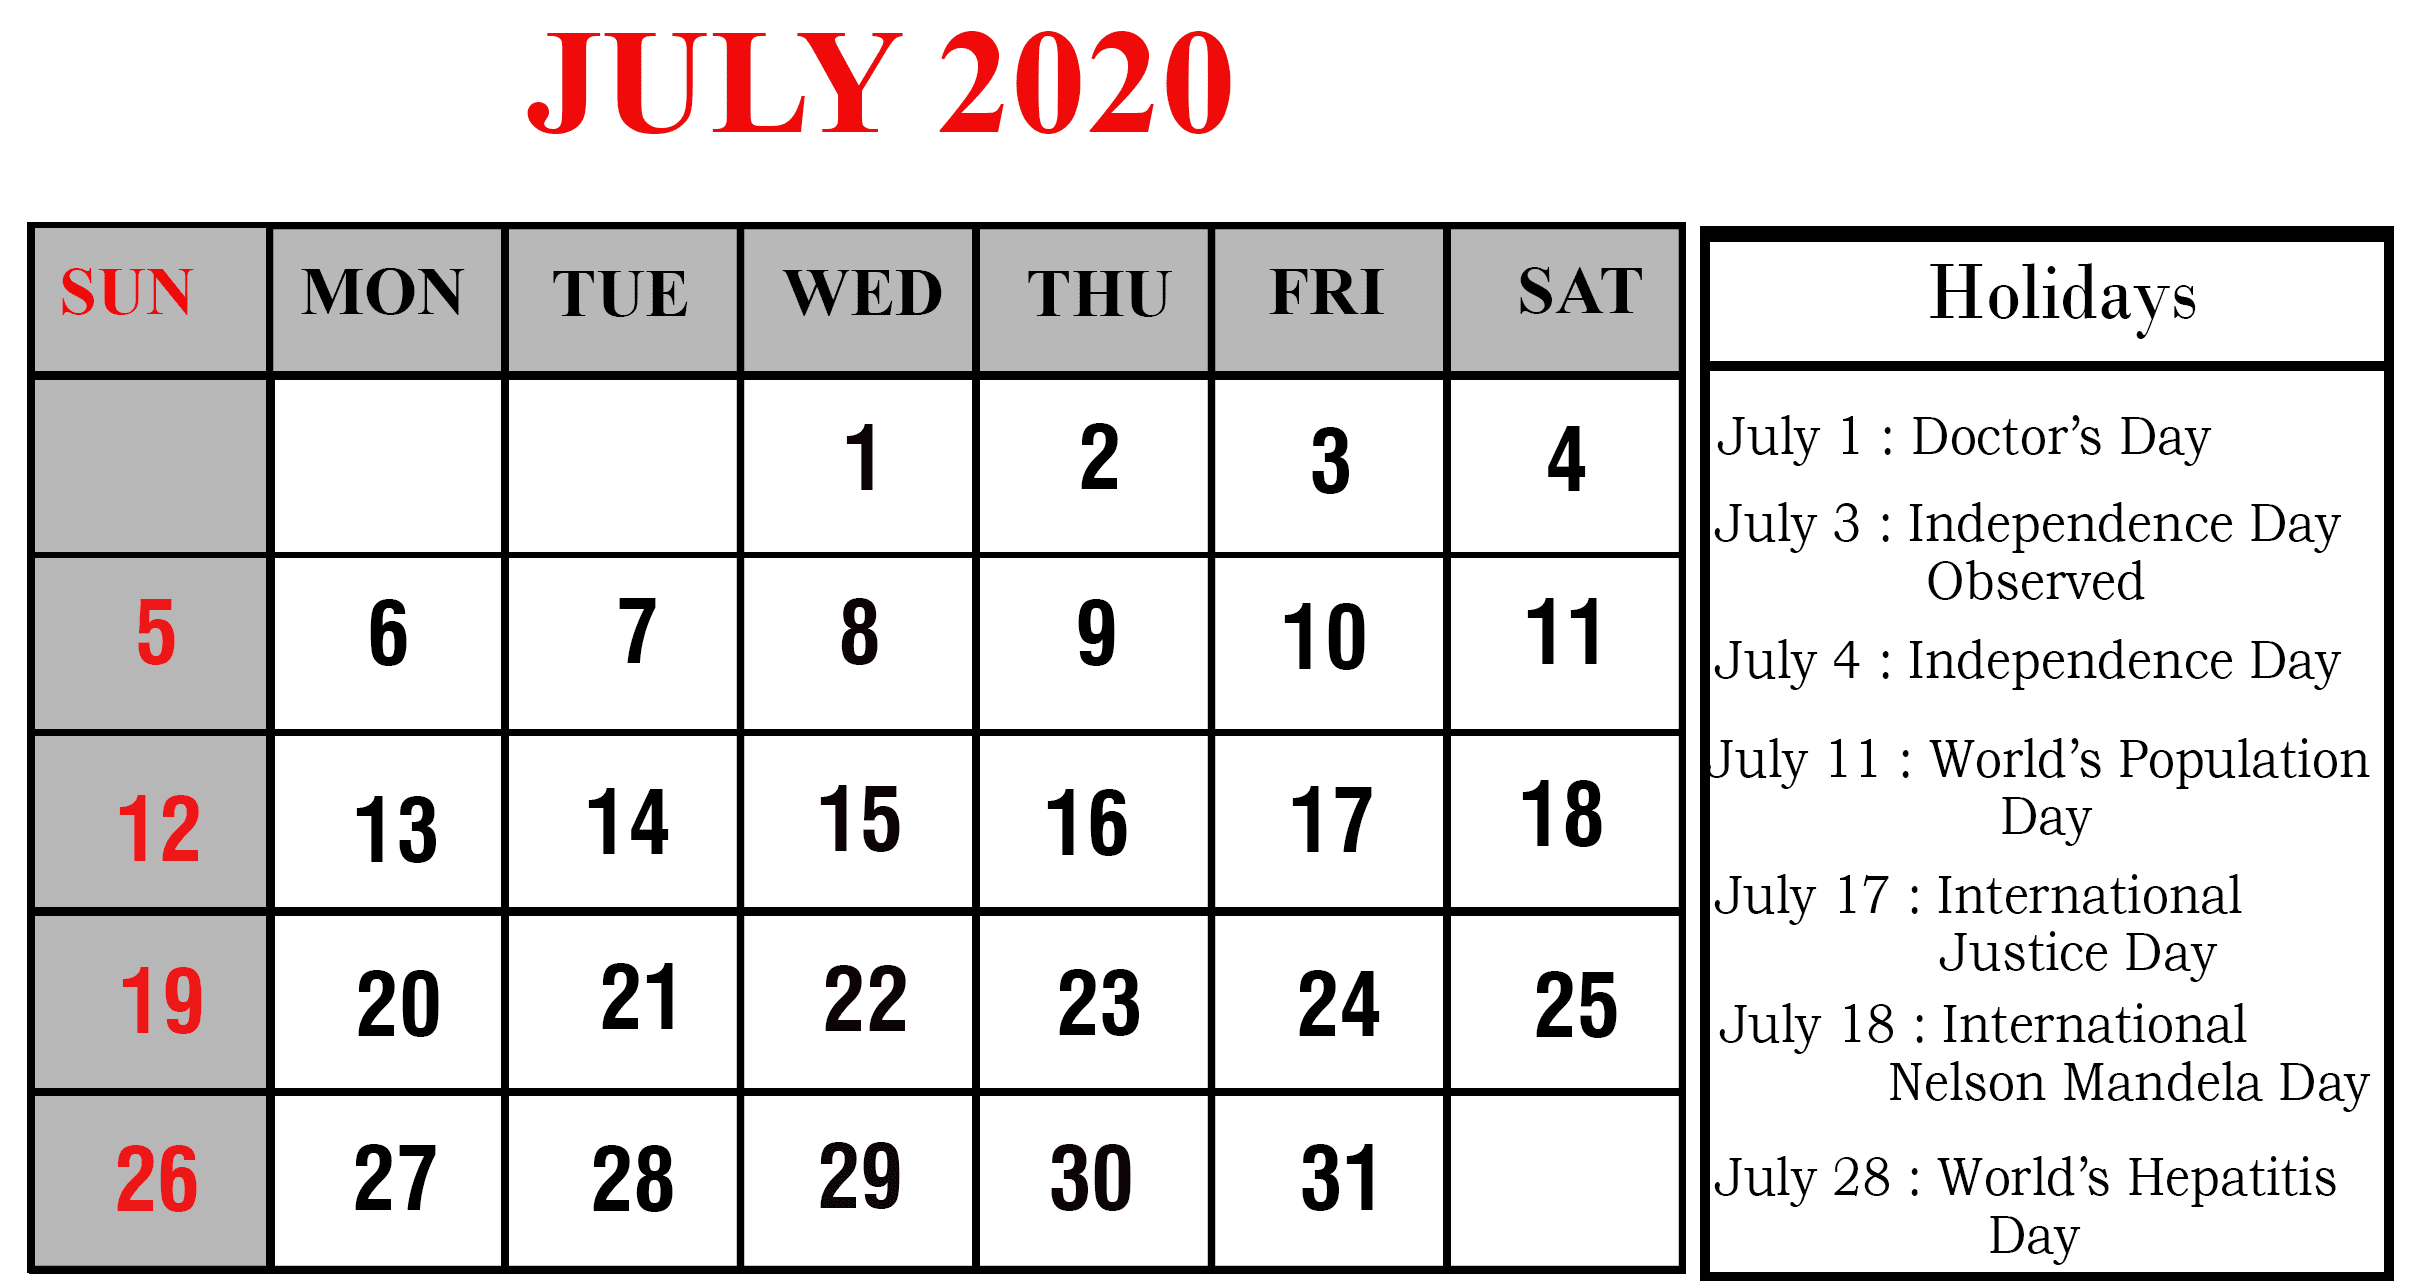 July 2020 Holidays Calendar